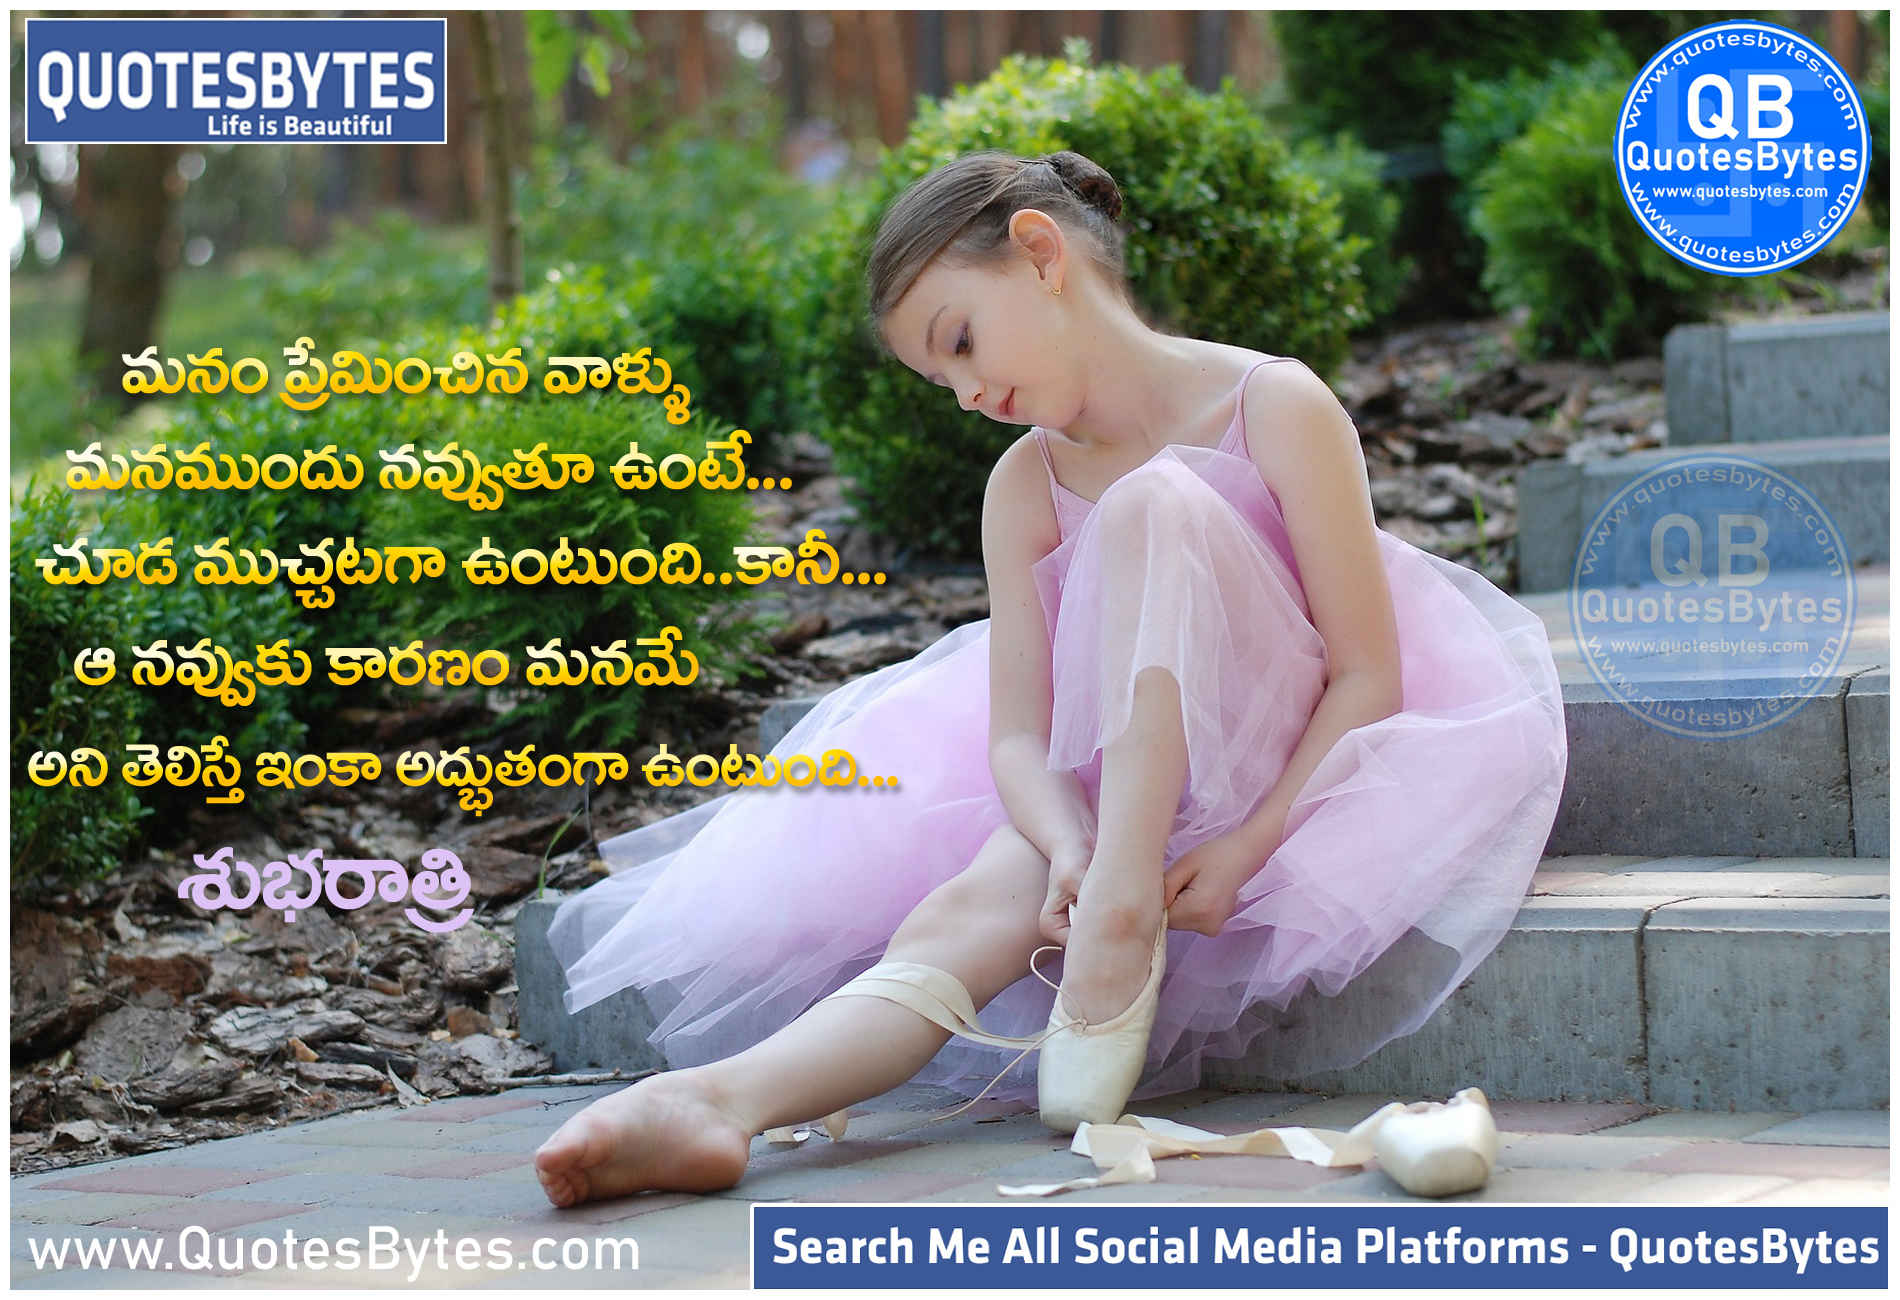 Latest Telugu Good Night Quotations, telugu good Night quotations, telugu good Night quotations download, latest telugu good Night images, good Night quotations in telugu ,Best inspirational Good Night quotes in Telugu, Best Quotes About Life,quotesbytes,inspirational quotes, Life Quotes — Inspiring the Happy, Good and Funny in Life,motivational quotes,kannada motivational words,life quotes in telugu,motivational quotes in tamil,motivational quotes in kannada,subhodayam telugu, good night quotes in telugu for lovers ,good Night motivational quotes in tamil,truth quotes images in hindi,motivational quotes in malayalam,love quotes in telugu,images of life lessons quotes,victory quotes,telugu good night kavithalu sms,funny telugu kavithalu,inspirational quotes in telugu,subhodayam images,subhodayam telugu images,motivational quotes in telugu, telugu good night kavithalu sms ,love quotes images kannada,goodnight images malayalam,inspirational quotes in telugu with images,good night kannada thoughts,success quotes in telugu,inspirational quotes in malayalam,marriage wishes in telugu quotes,motivational quotes telugu,tamil inspirational quotes,good Night malayalam sms,funny kavithalu in telugu,best quotes in telugu,life motivational quotes in tamil,moral quotes in telugu,subhodayam photos, MOTIVATIONAL QUOTES TO REACH YOUR POTENTIAL EACH DAY, Inspirational Motivational Quotes To Inspire You To Greatness,motivational quotes tamil,Telugu animutyalu, Telugu sooktulu, shubhodayam greetings wishes messages in telugu,best telugu Goood Night success Quotes with goal setting sms text messages for whatsapp,good Night god images in telugu,love quotations,Latest Telugu good Night quotations for friends about win life goal settings,Quotes ideas | quotes, great quotes, inspirational quotes, telugu,malayalam love quotes in english,inspiring telugu quotes,motivational quotes in tamil images,good night images in kannada download,good night malayalam status,malayalam good night images,Nig